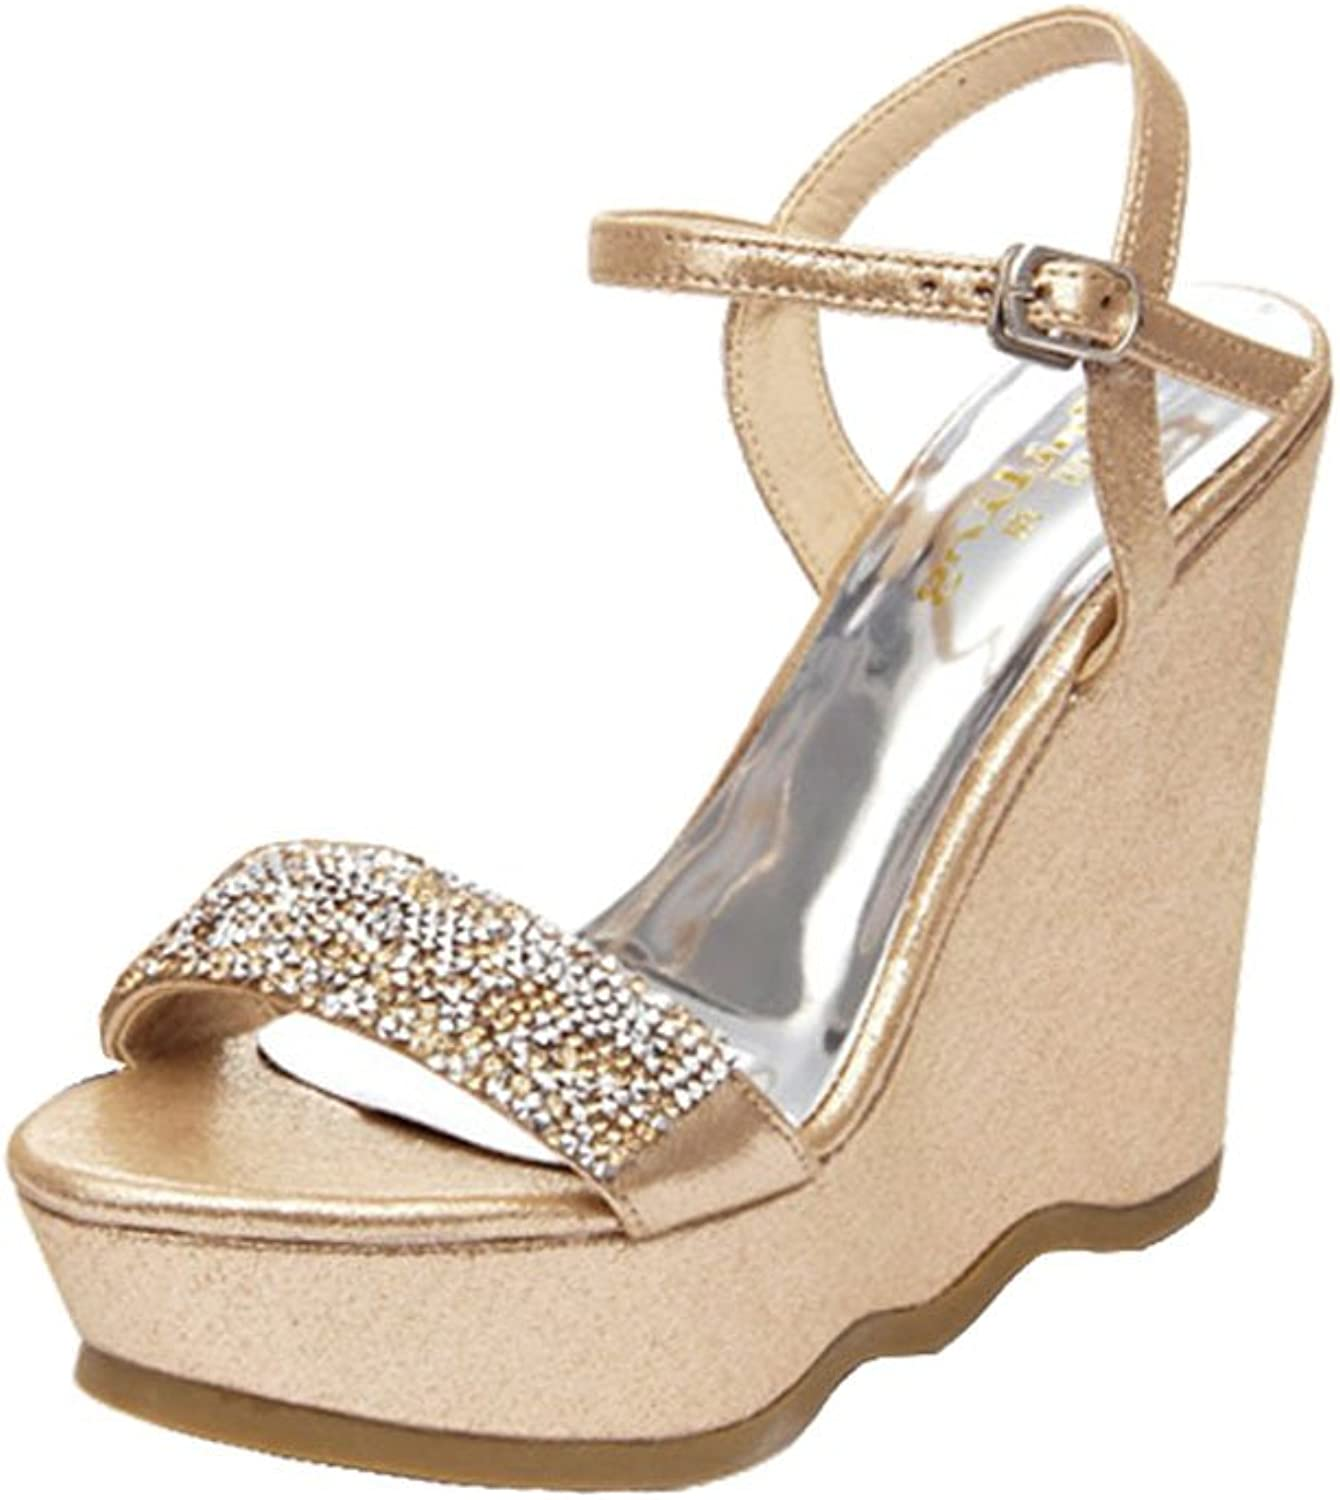 Summer Women's Wedges Heels   Sexy shoes Rhinestone Women's shoes (color   gold, Size   12 cm-37)